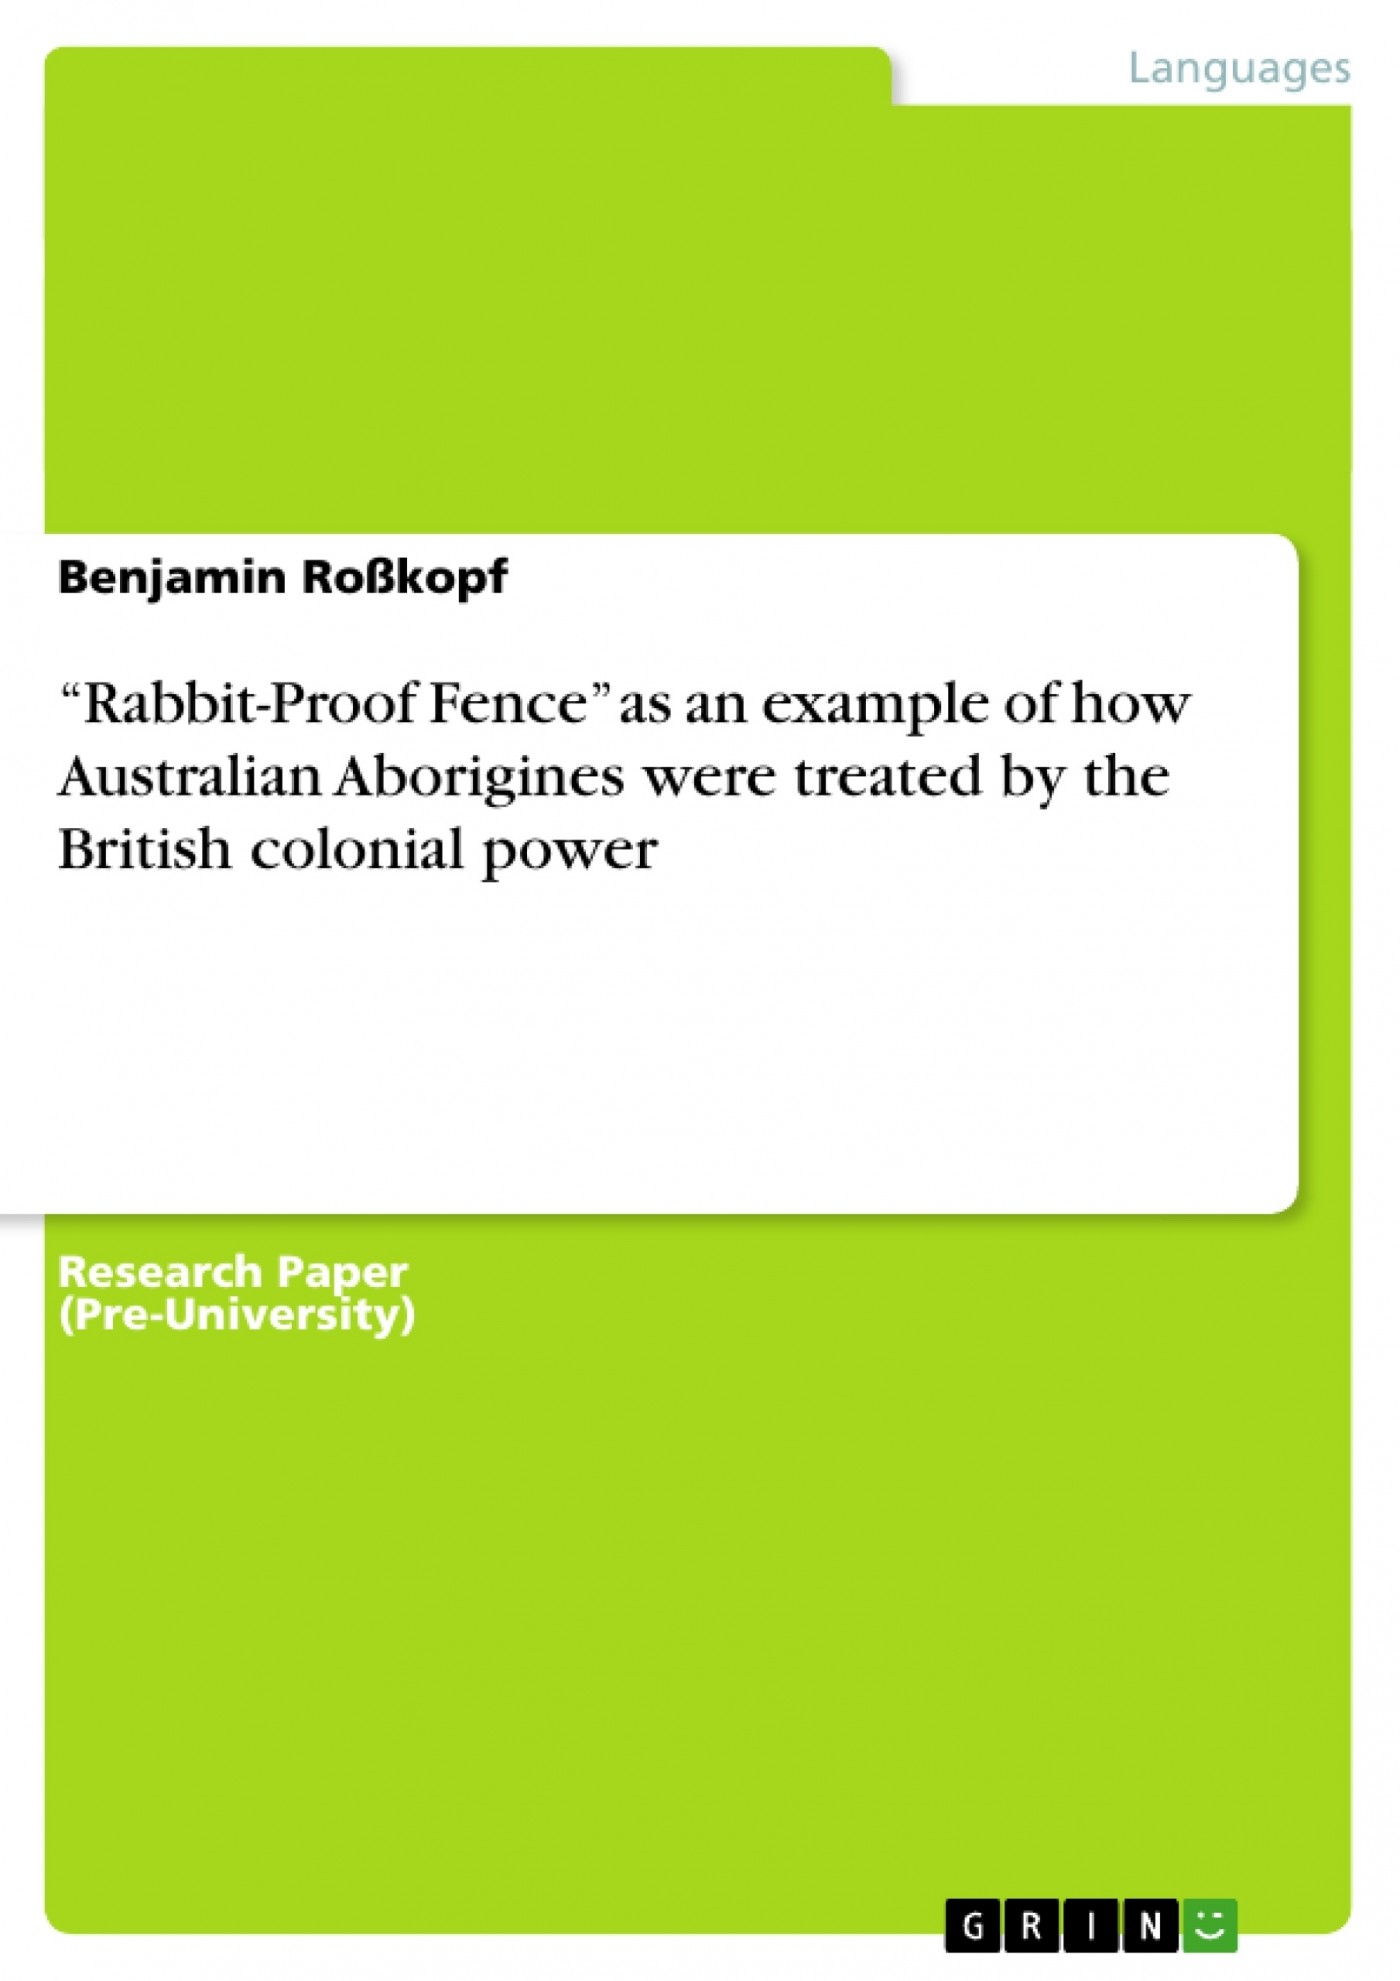 004 282790 0 Essay Example Rabbit Proof Fence Film Top Review 1400